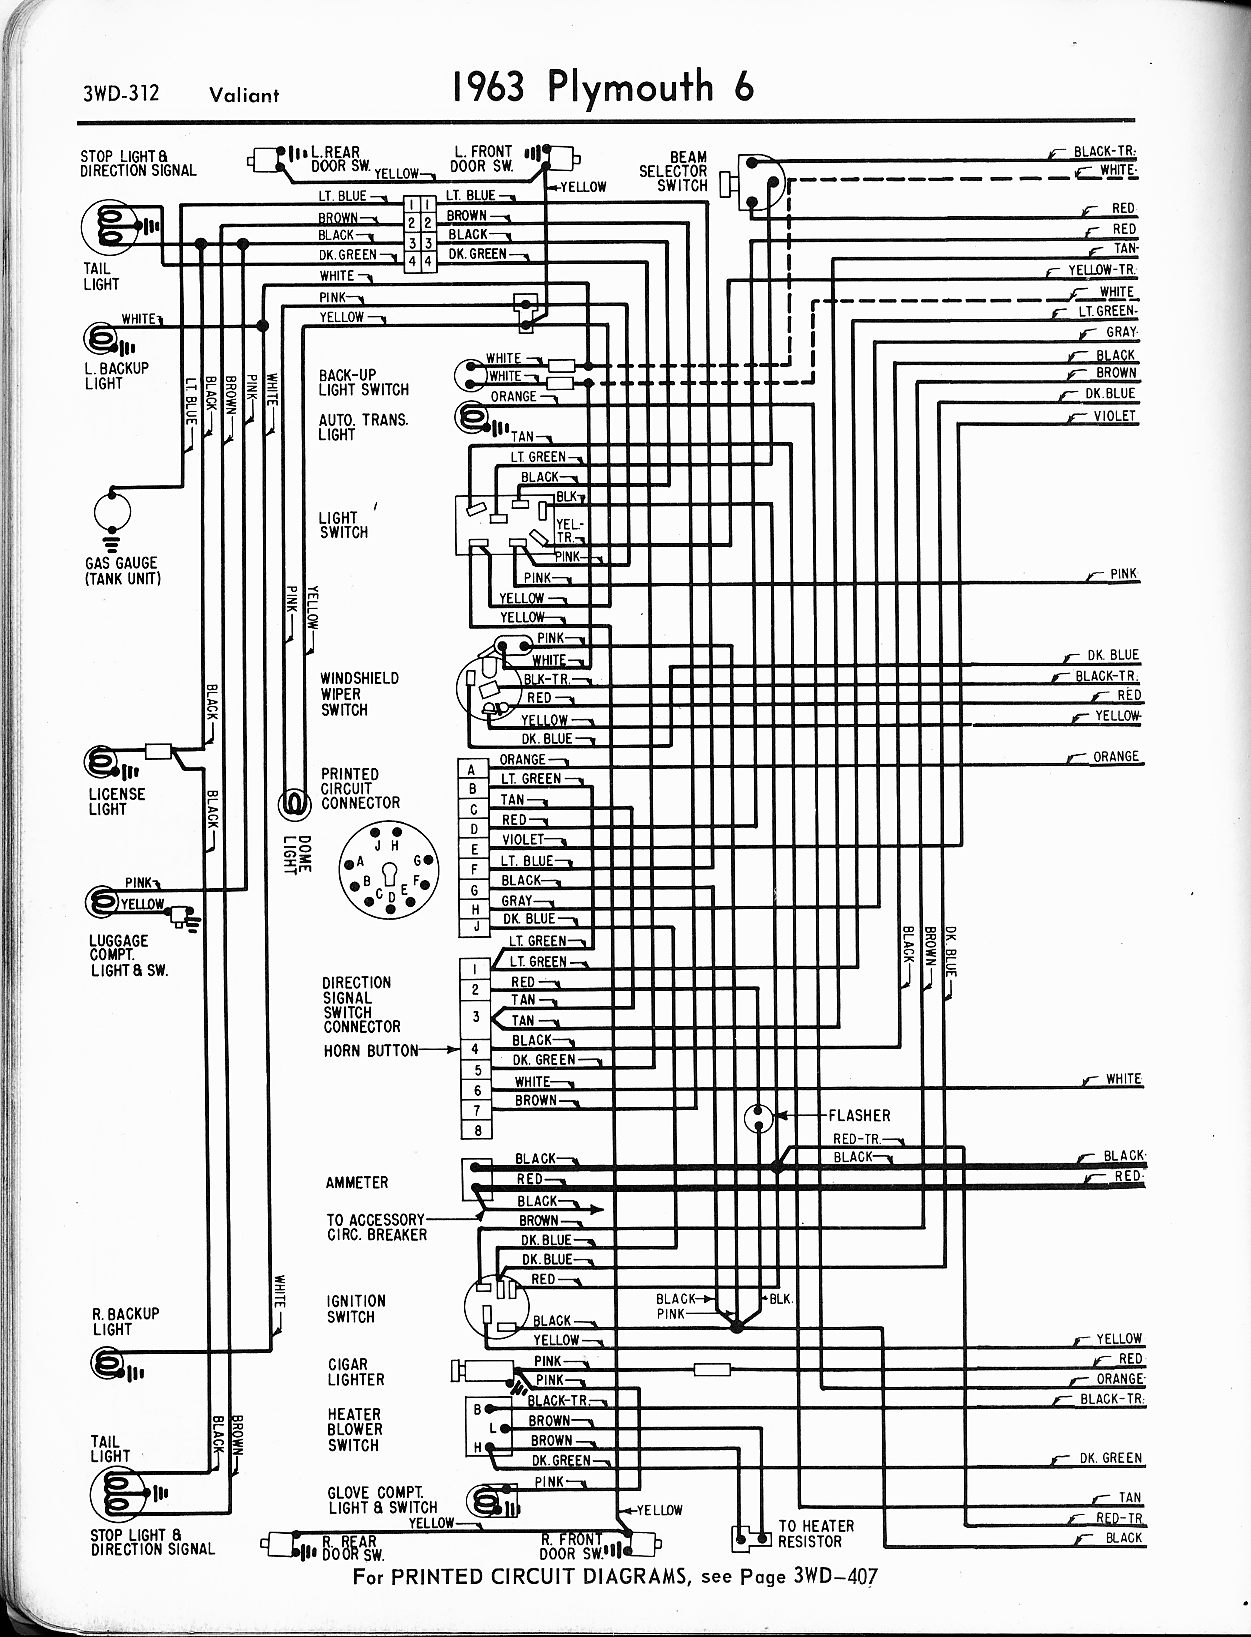 MWire5765 312 1956 1965 plymouth wiring the old car manual project 64 valiant wiring diagram at readyjetset.co